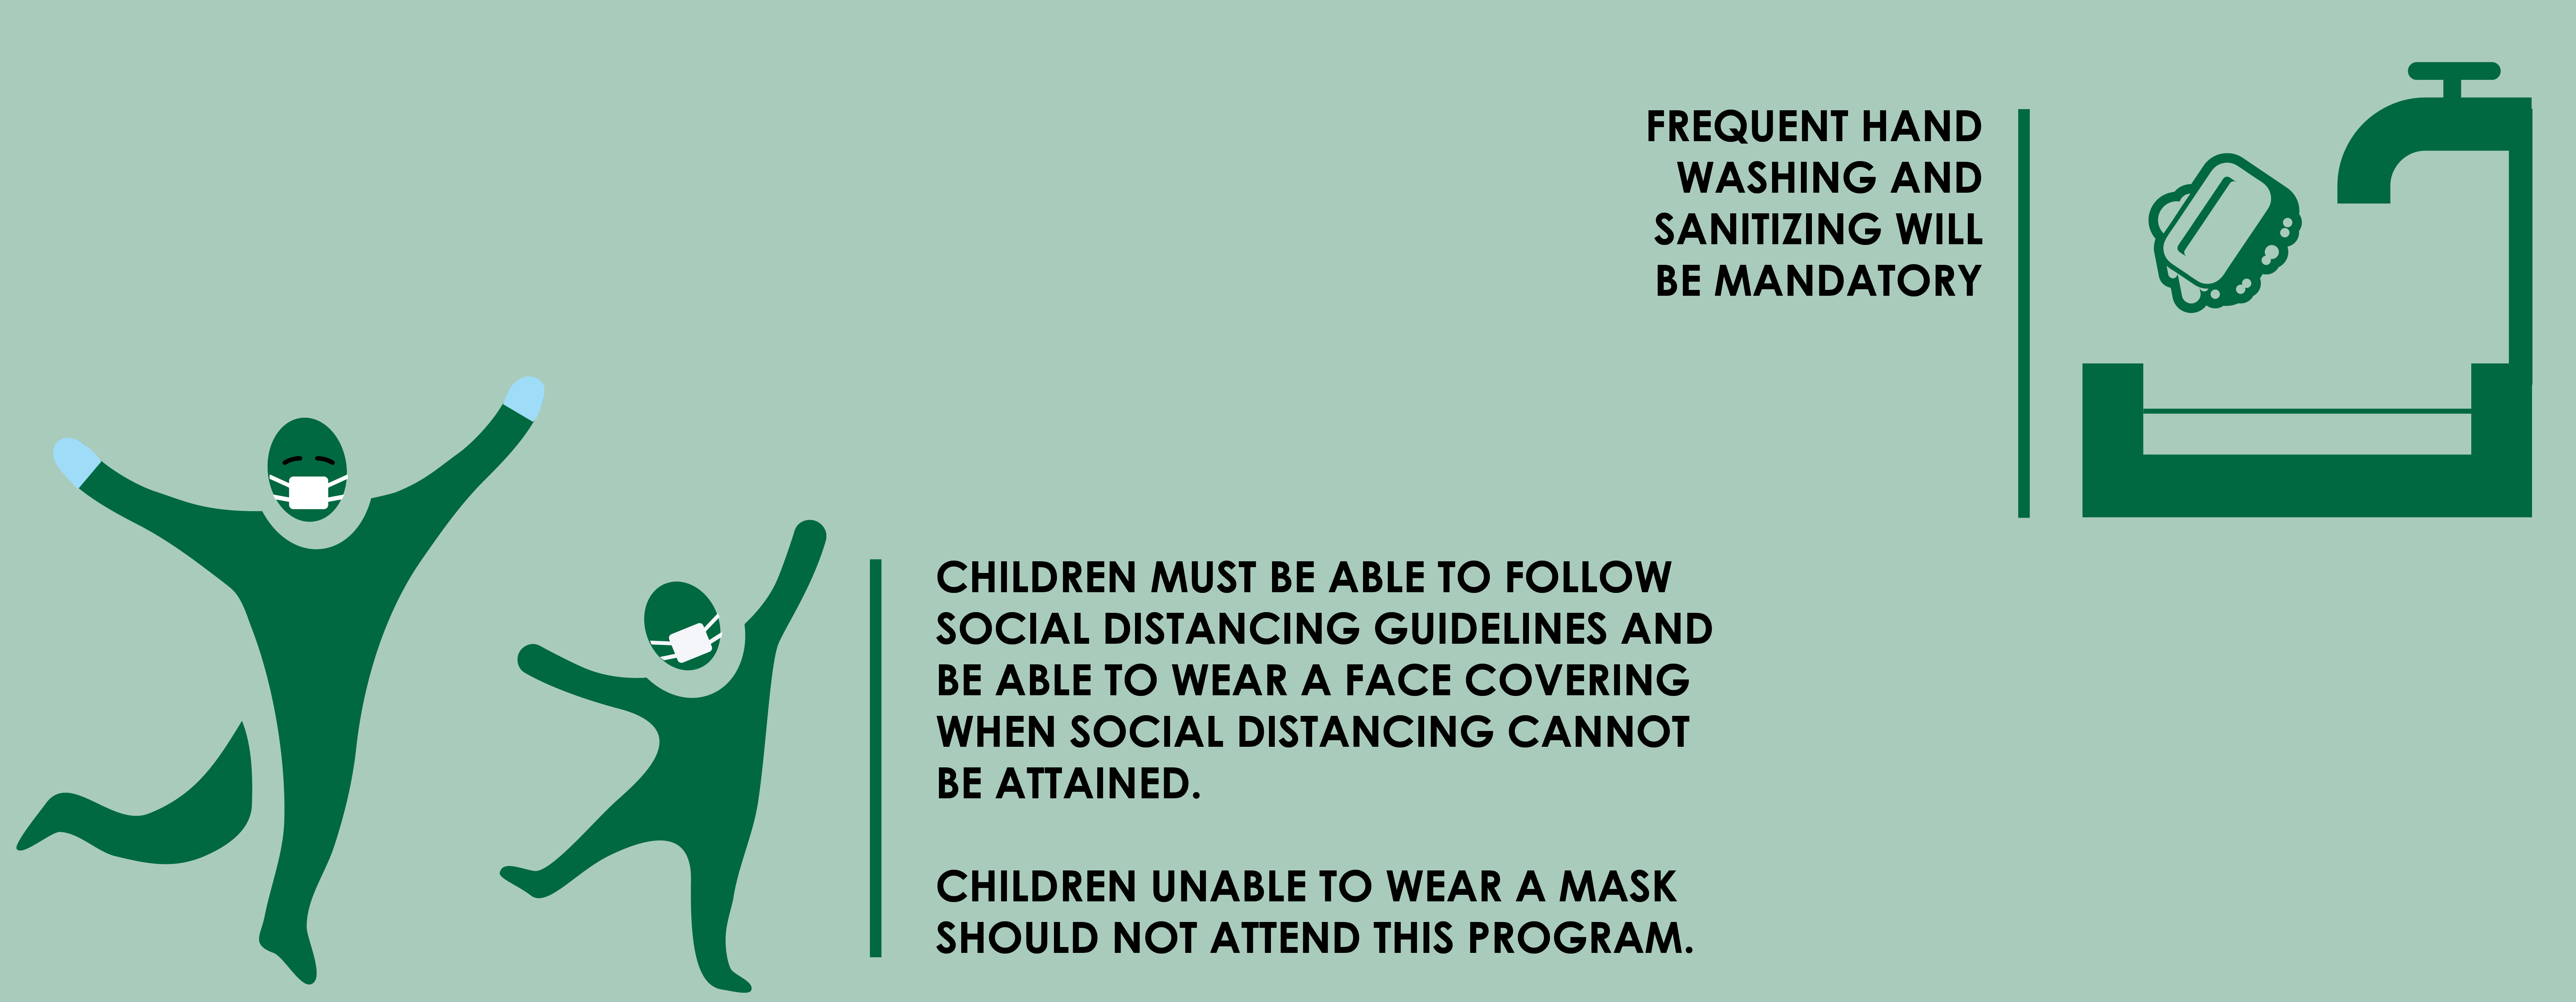 Children must be able to follow safety instructions. Children will be asked to wear a mask, follow social distancing guidelines and wash hands regularly.